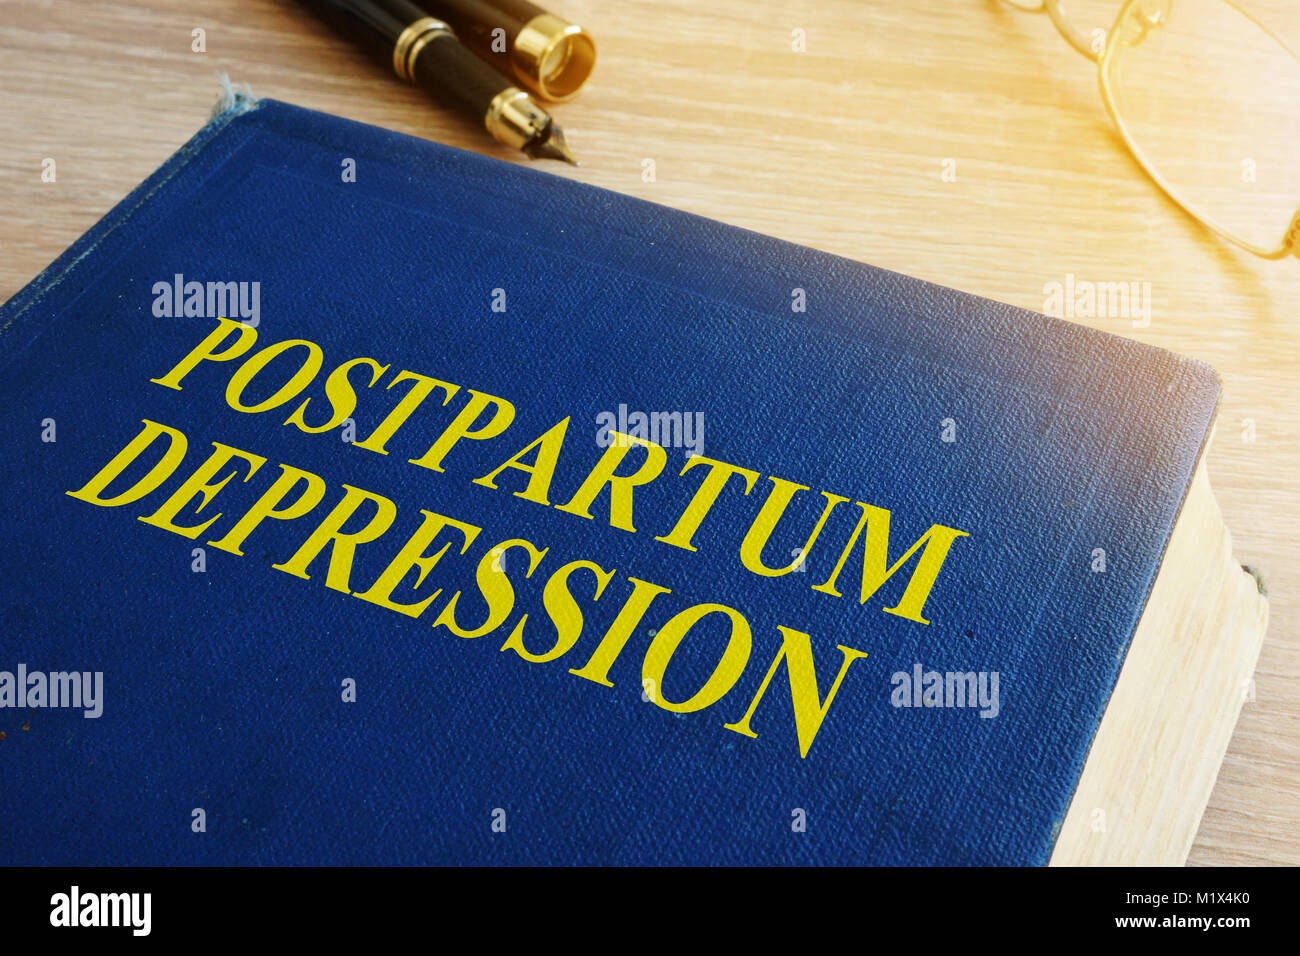 Book with title Postpartum depression on a table. - Stock Image